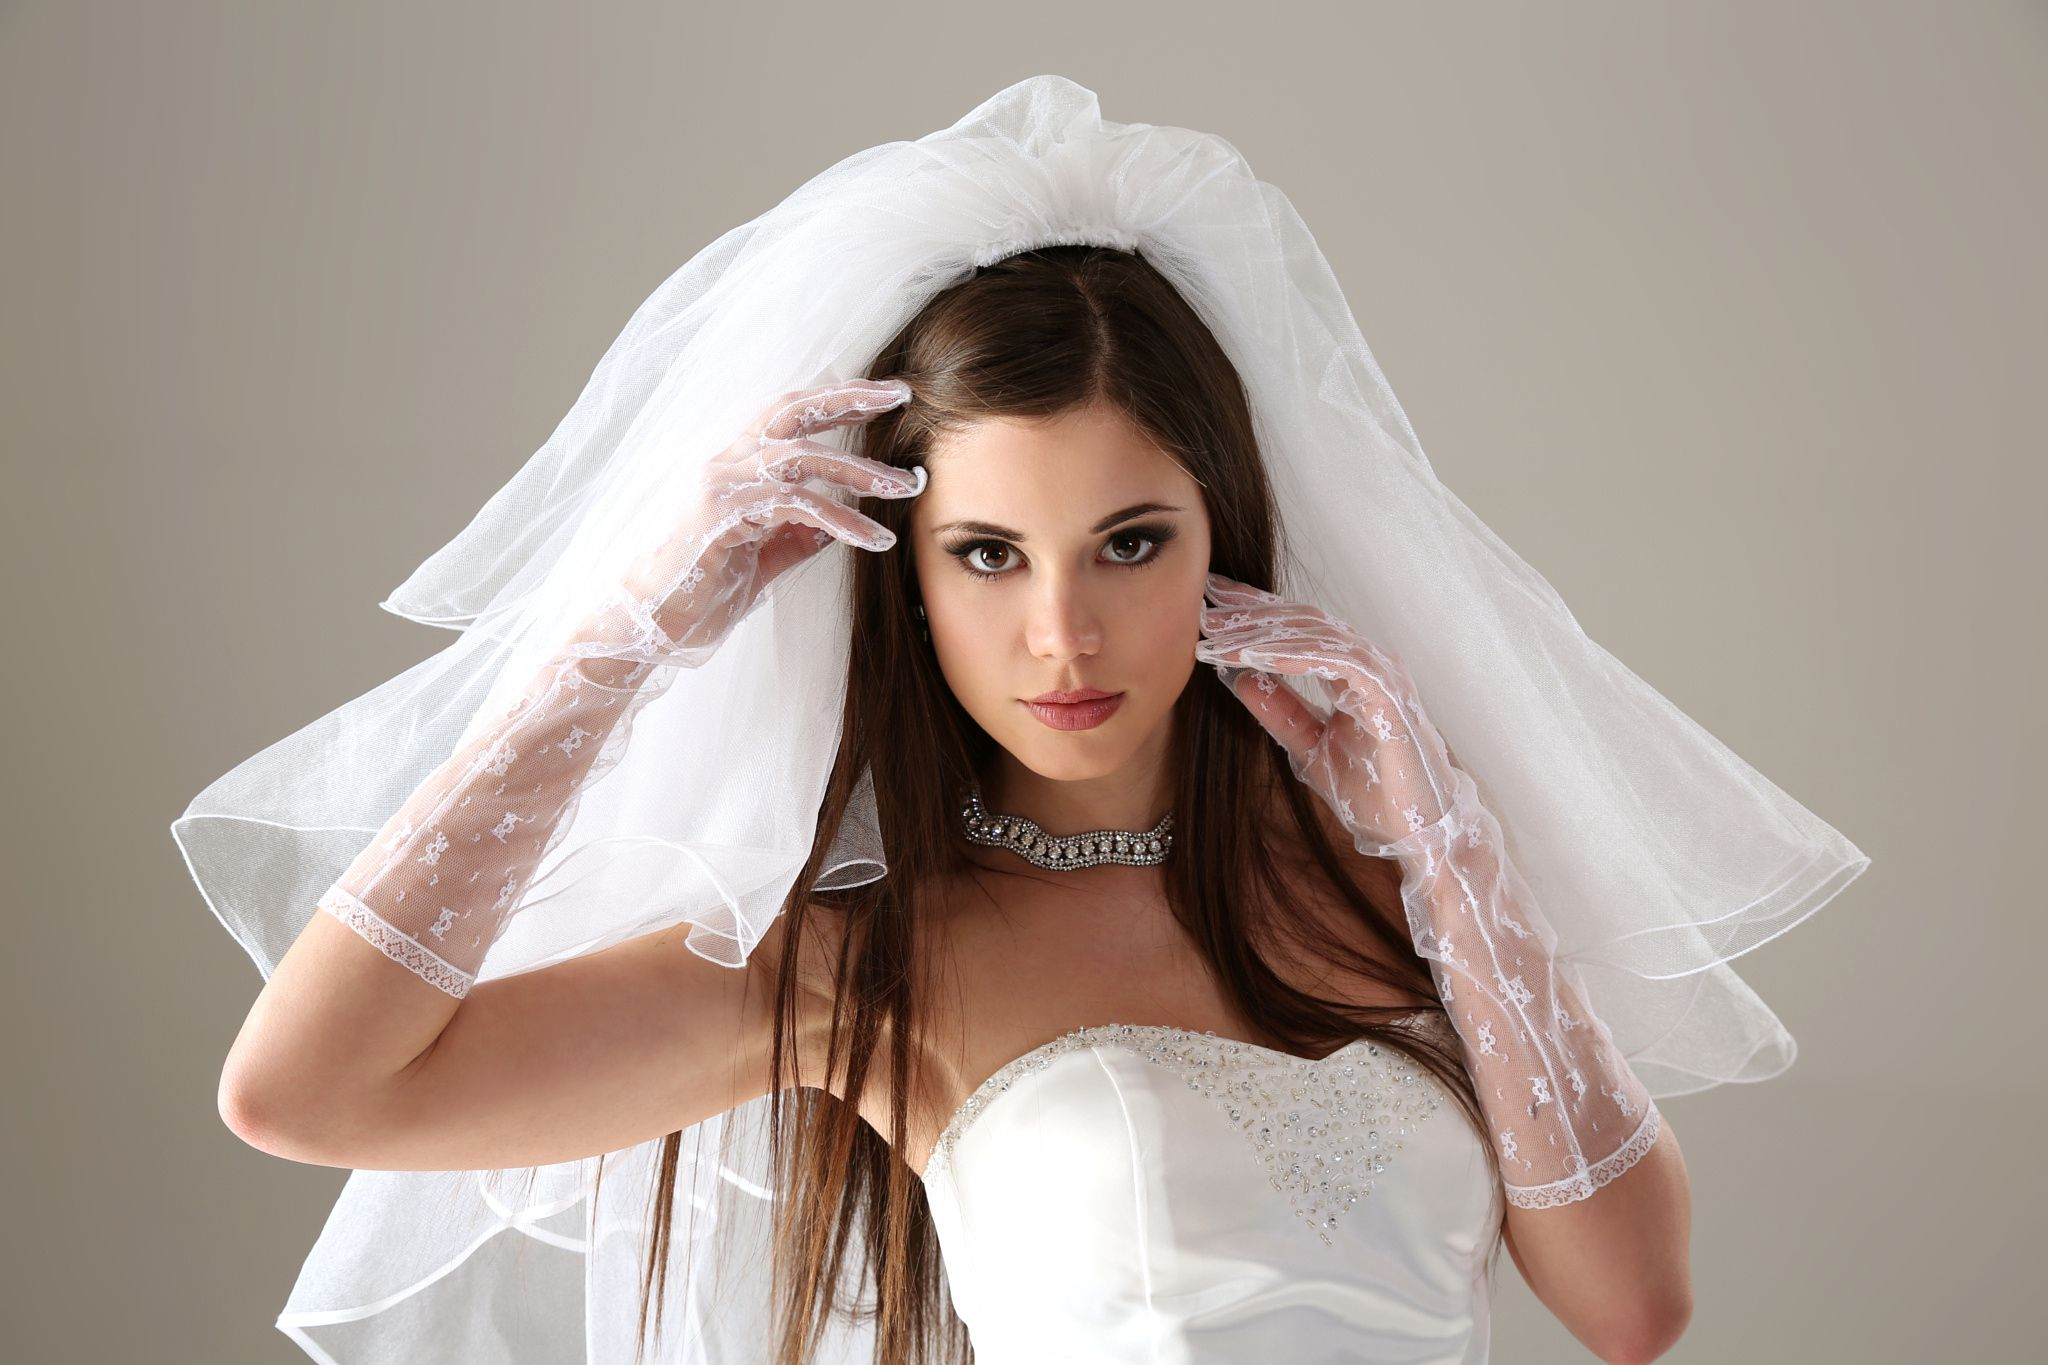 Little Caprice is wearing a wedding dress. Who did she marry? Find